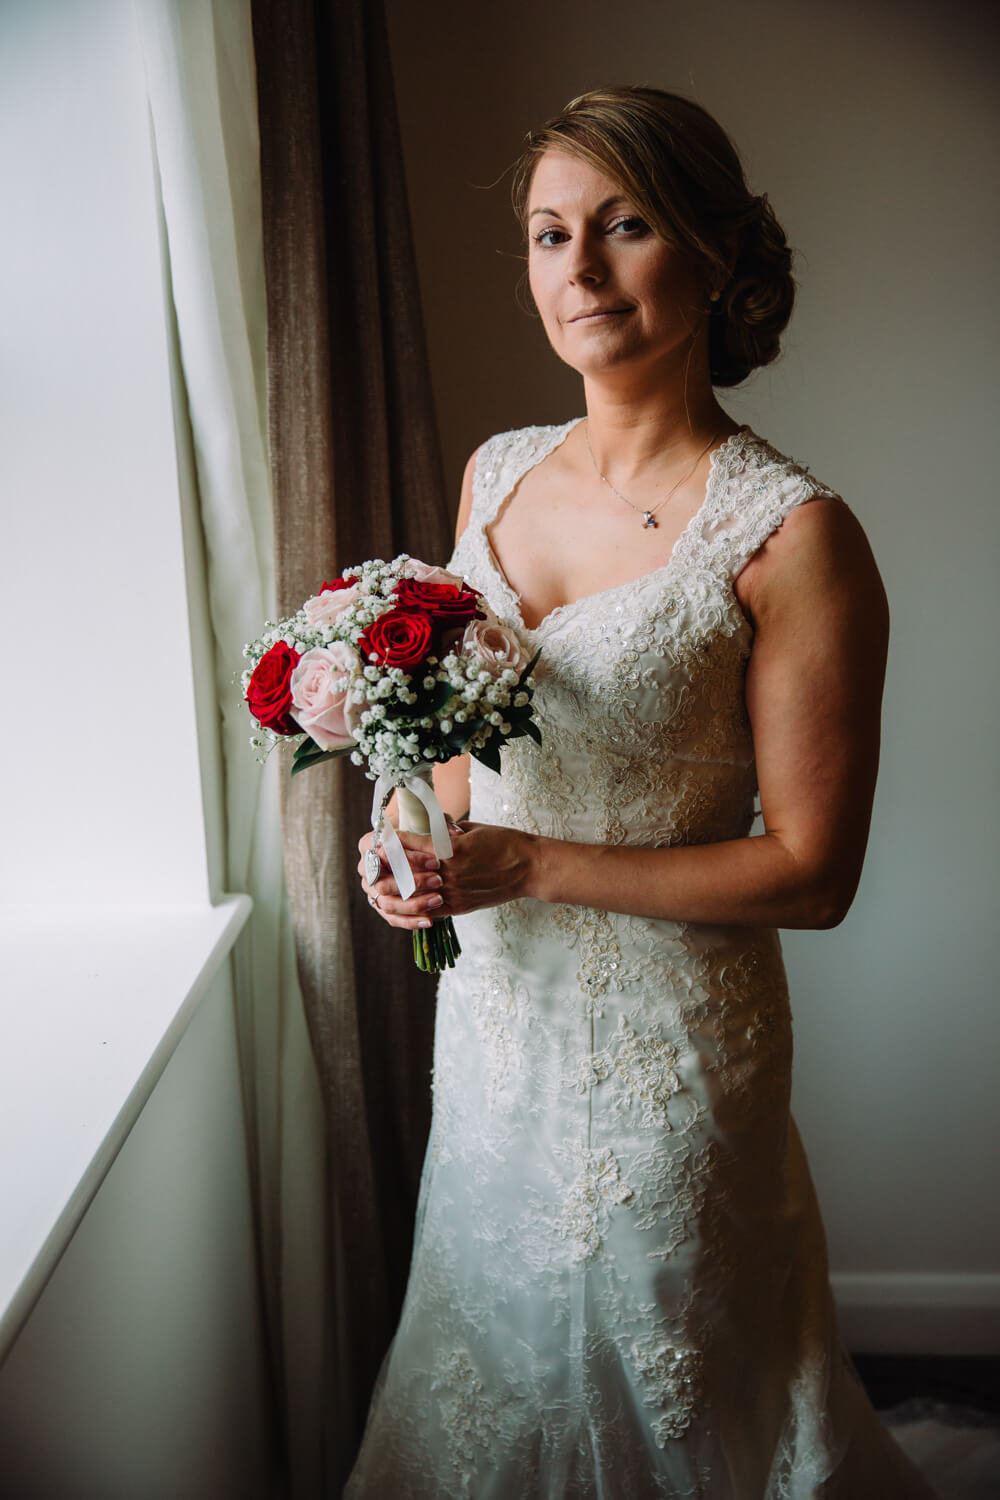 bride holding wedding flowers at window